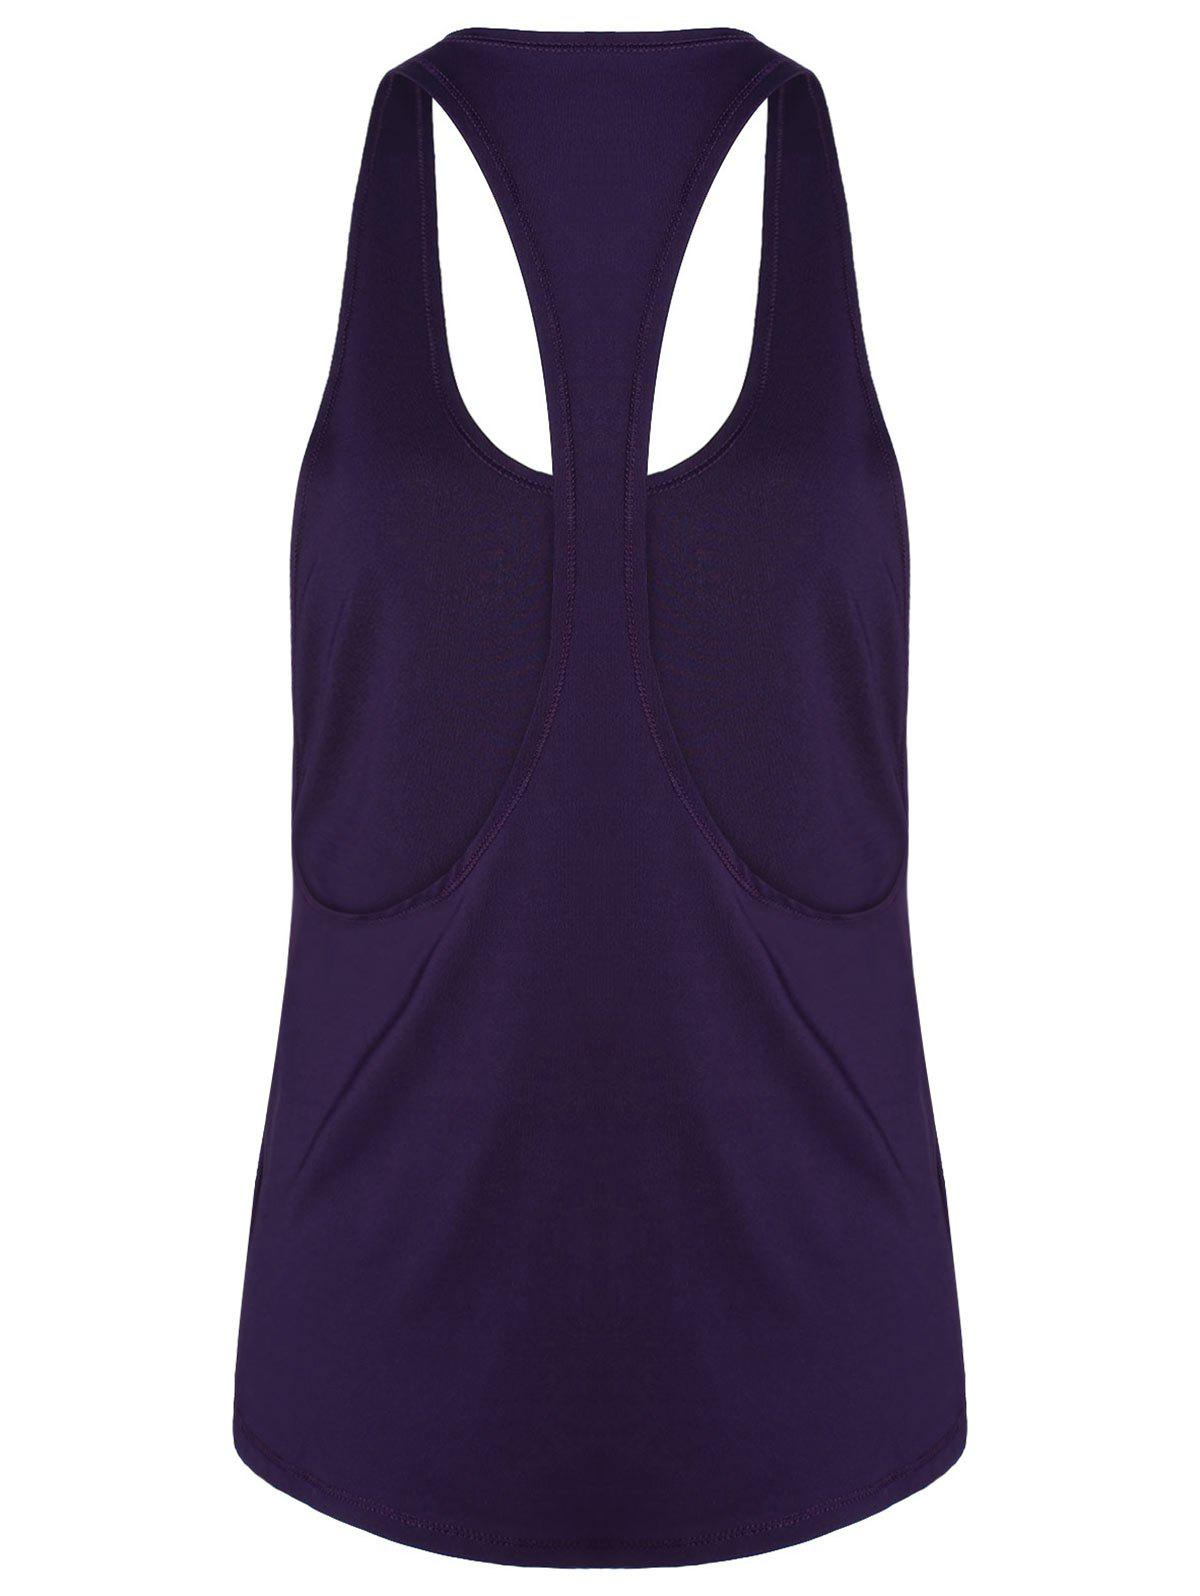 Sports Racerback Running Vest - DEEP PURPLE XL